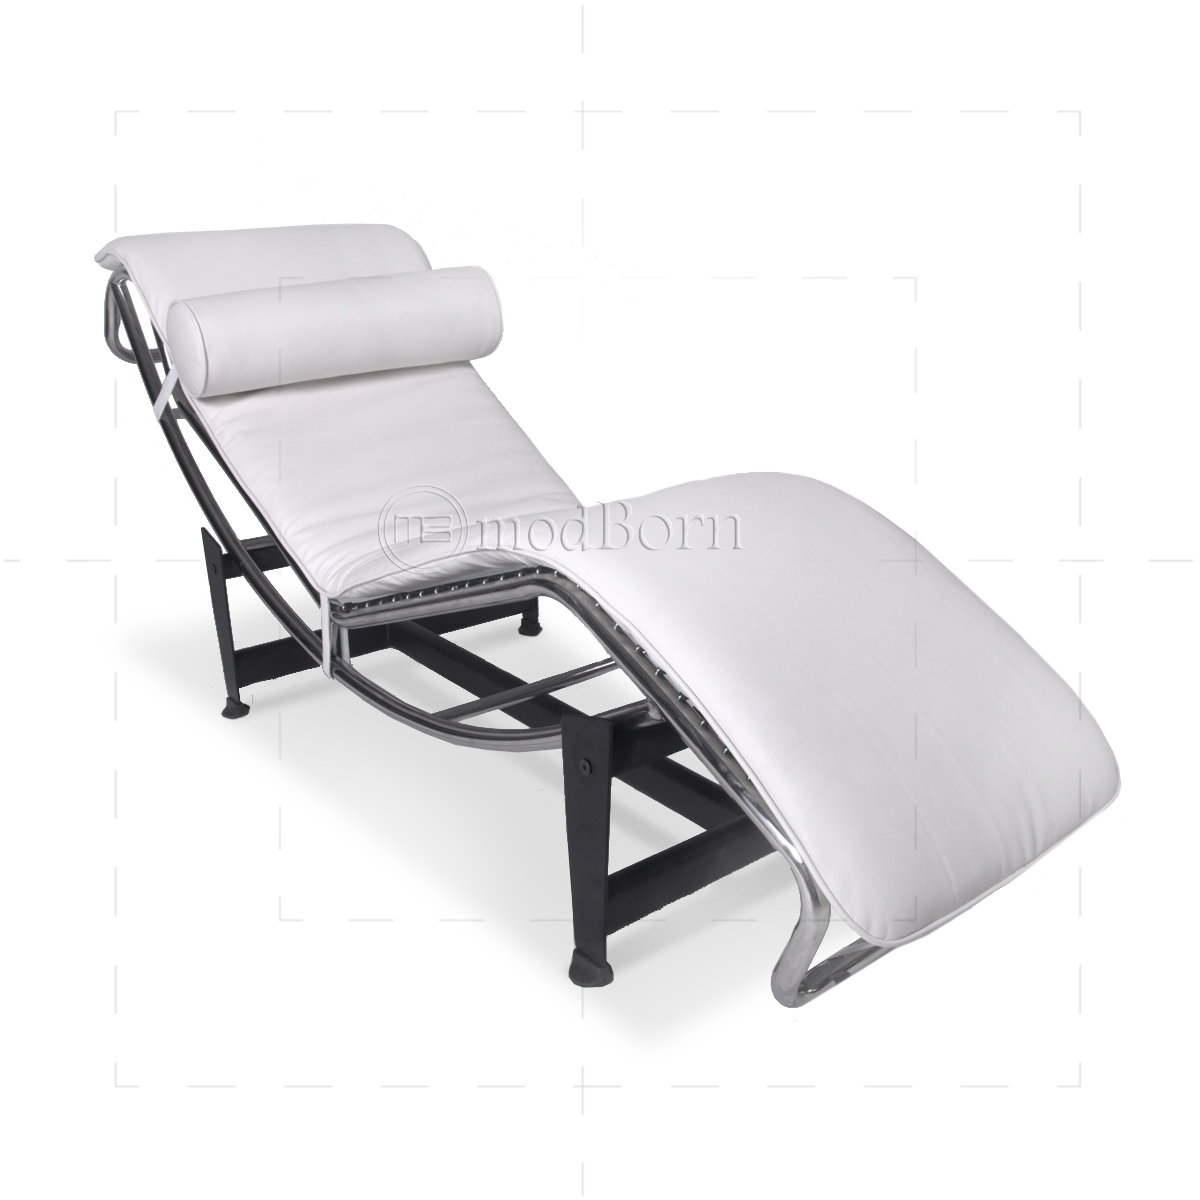 Le corbusier style lc4 chaise longue white leather replica for Chaise longue le corbusier ebay